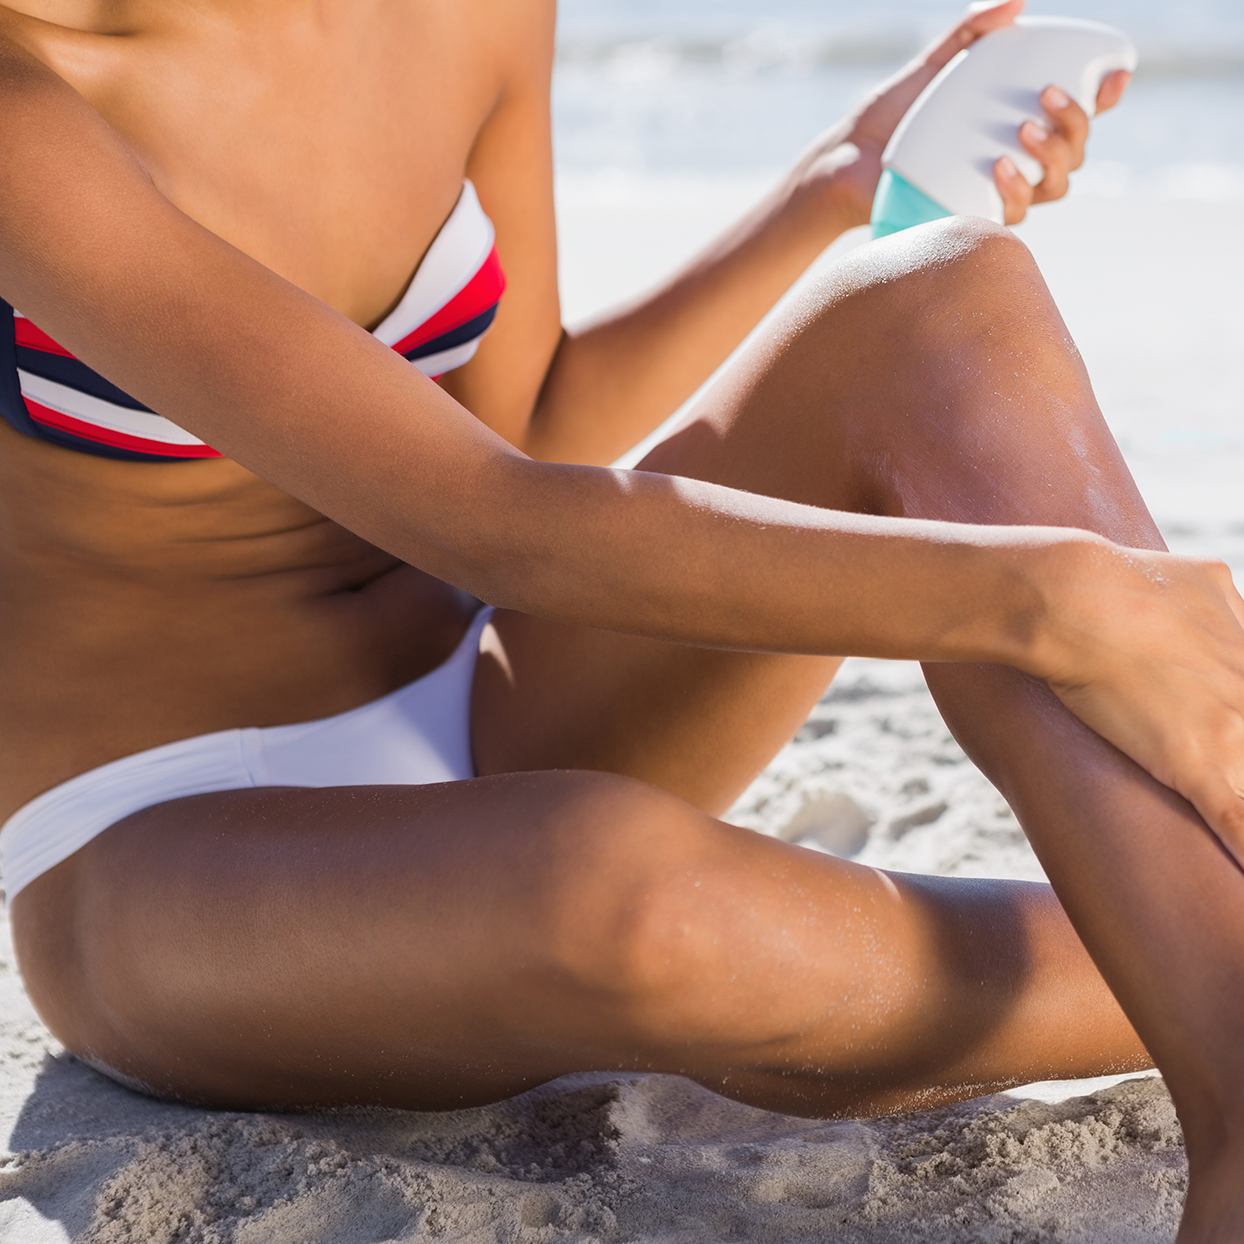 Does Sunscreen Really Absorb Into Your Bloodstream?